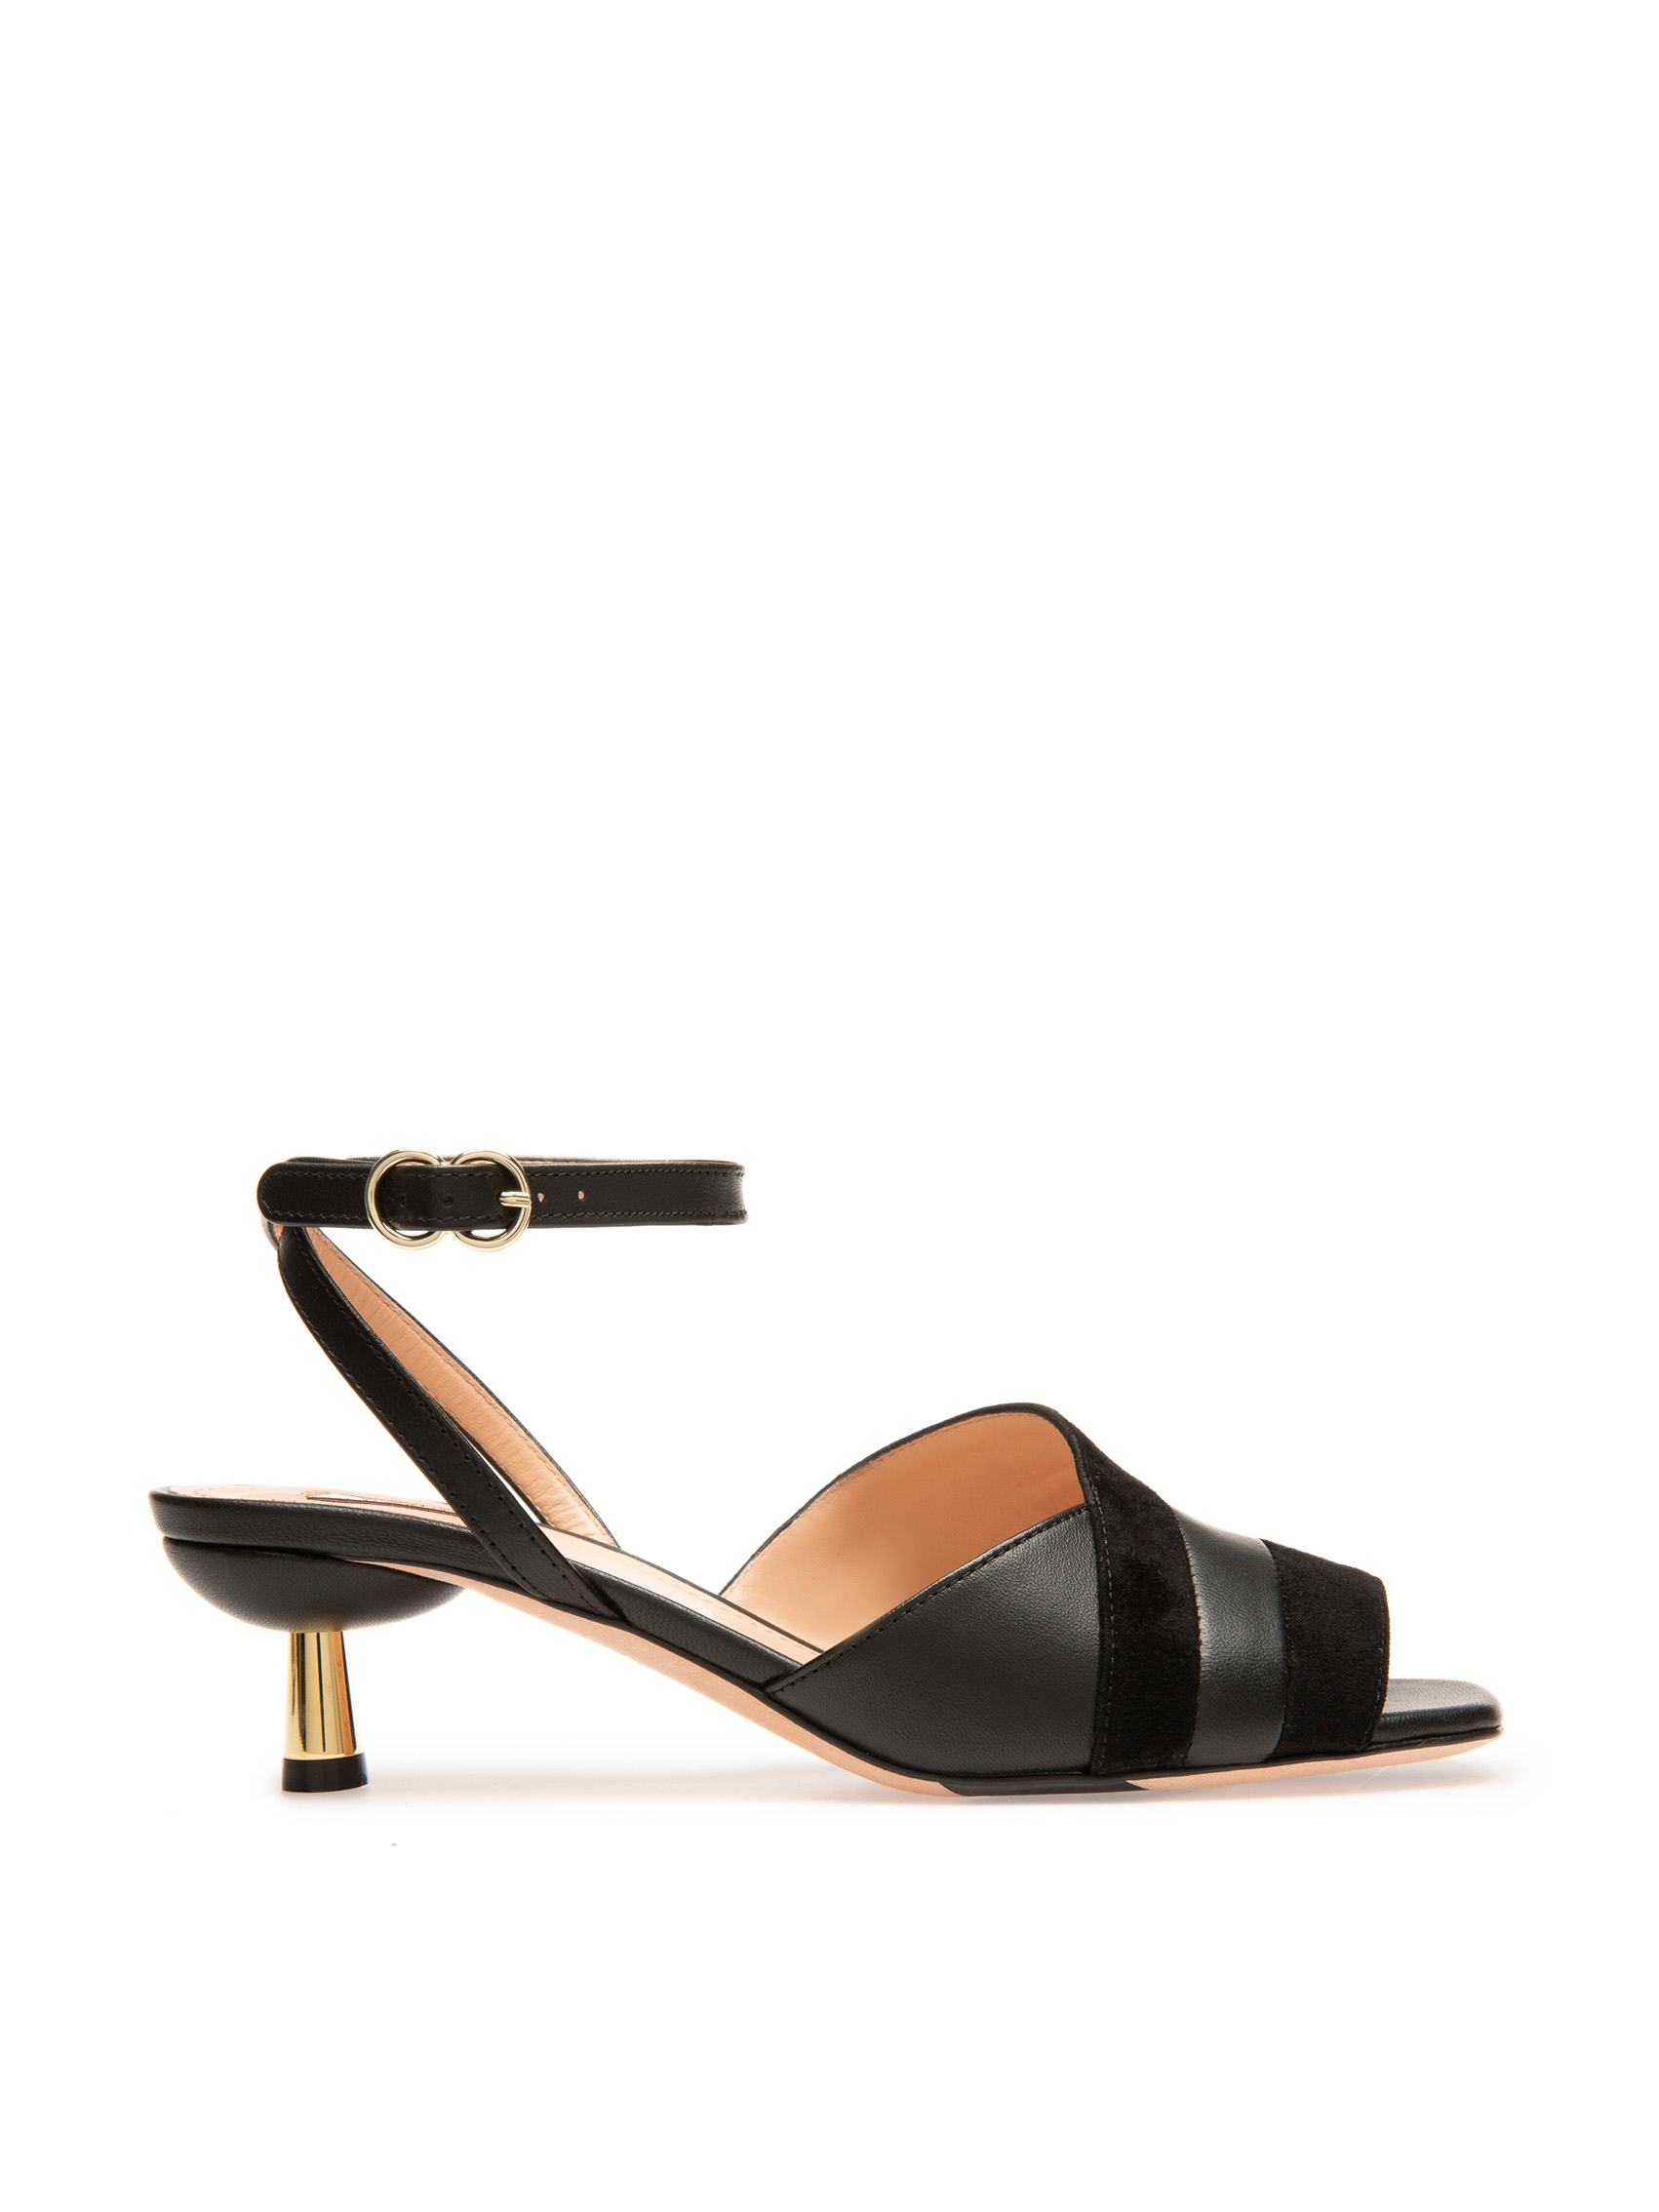 bally-ss20-women-callie_caroll_45_000f_online